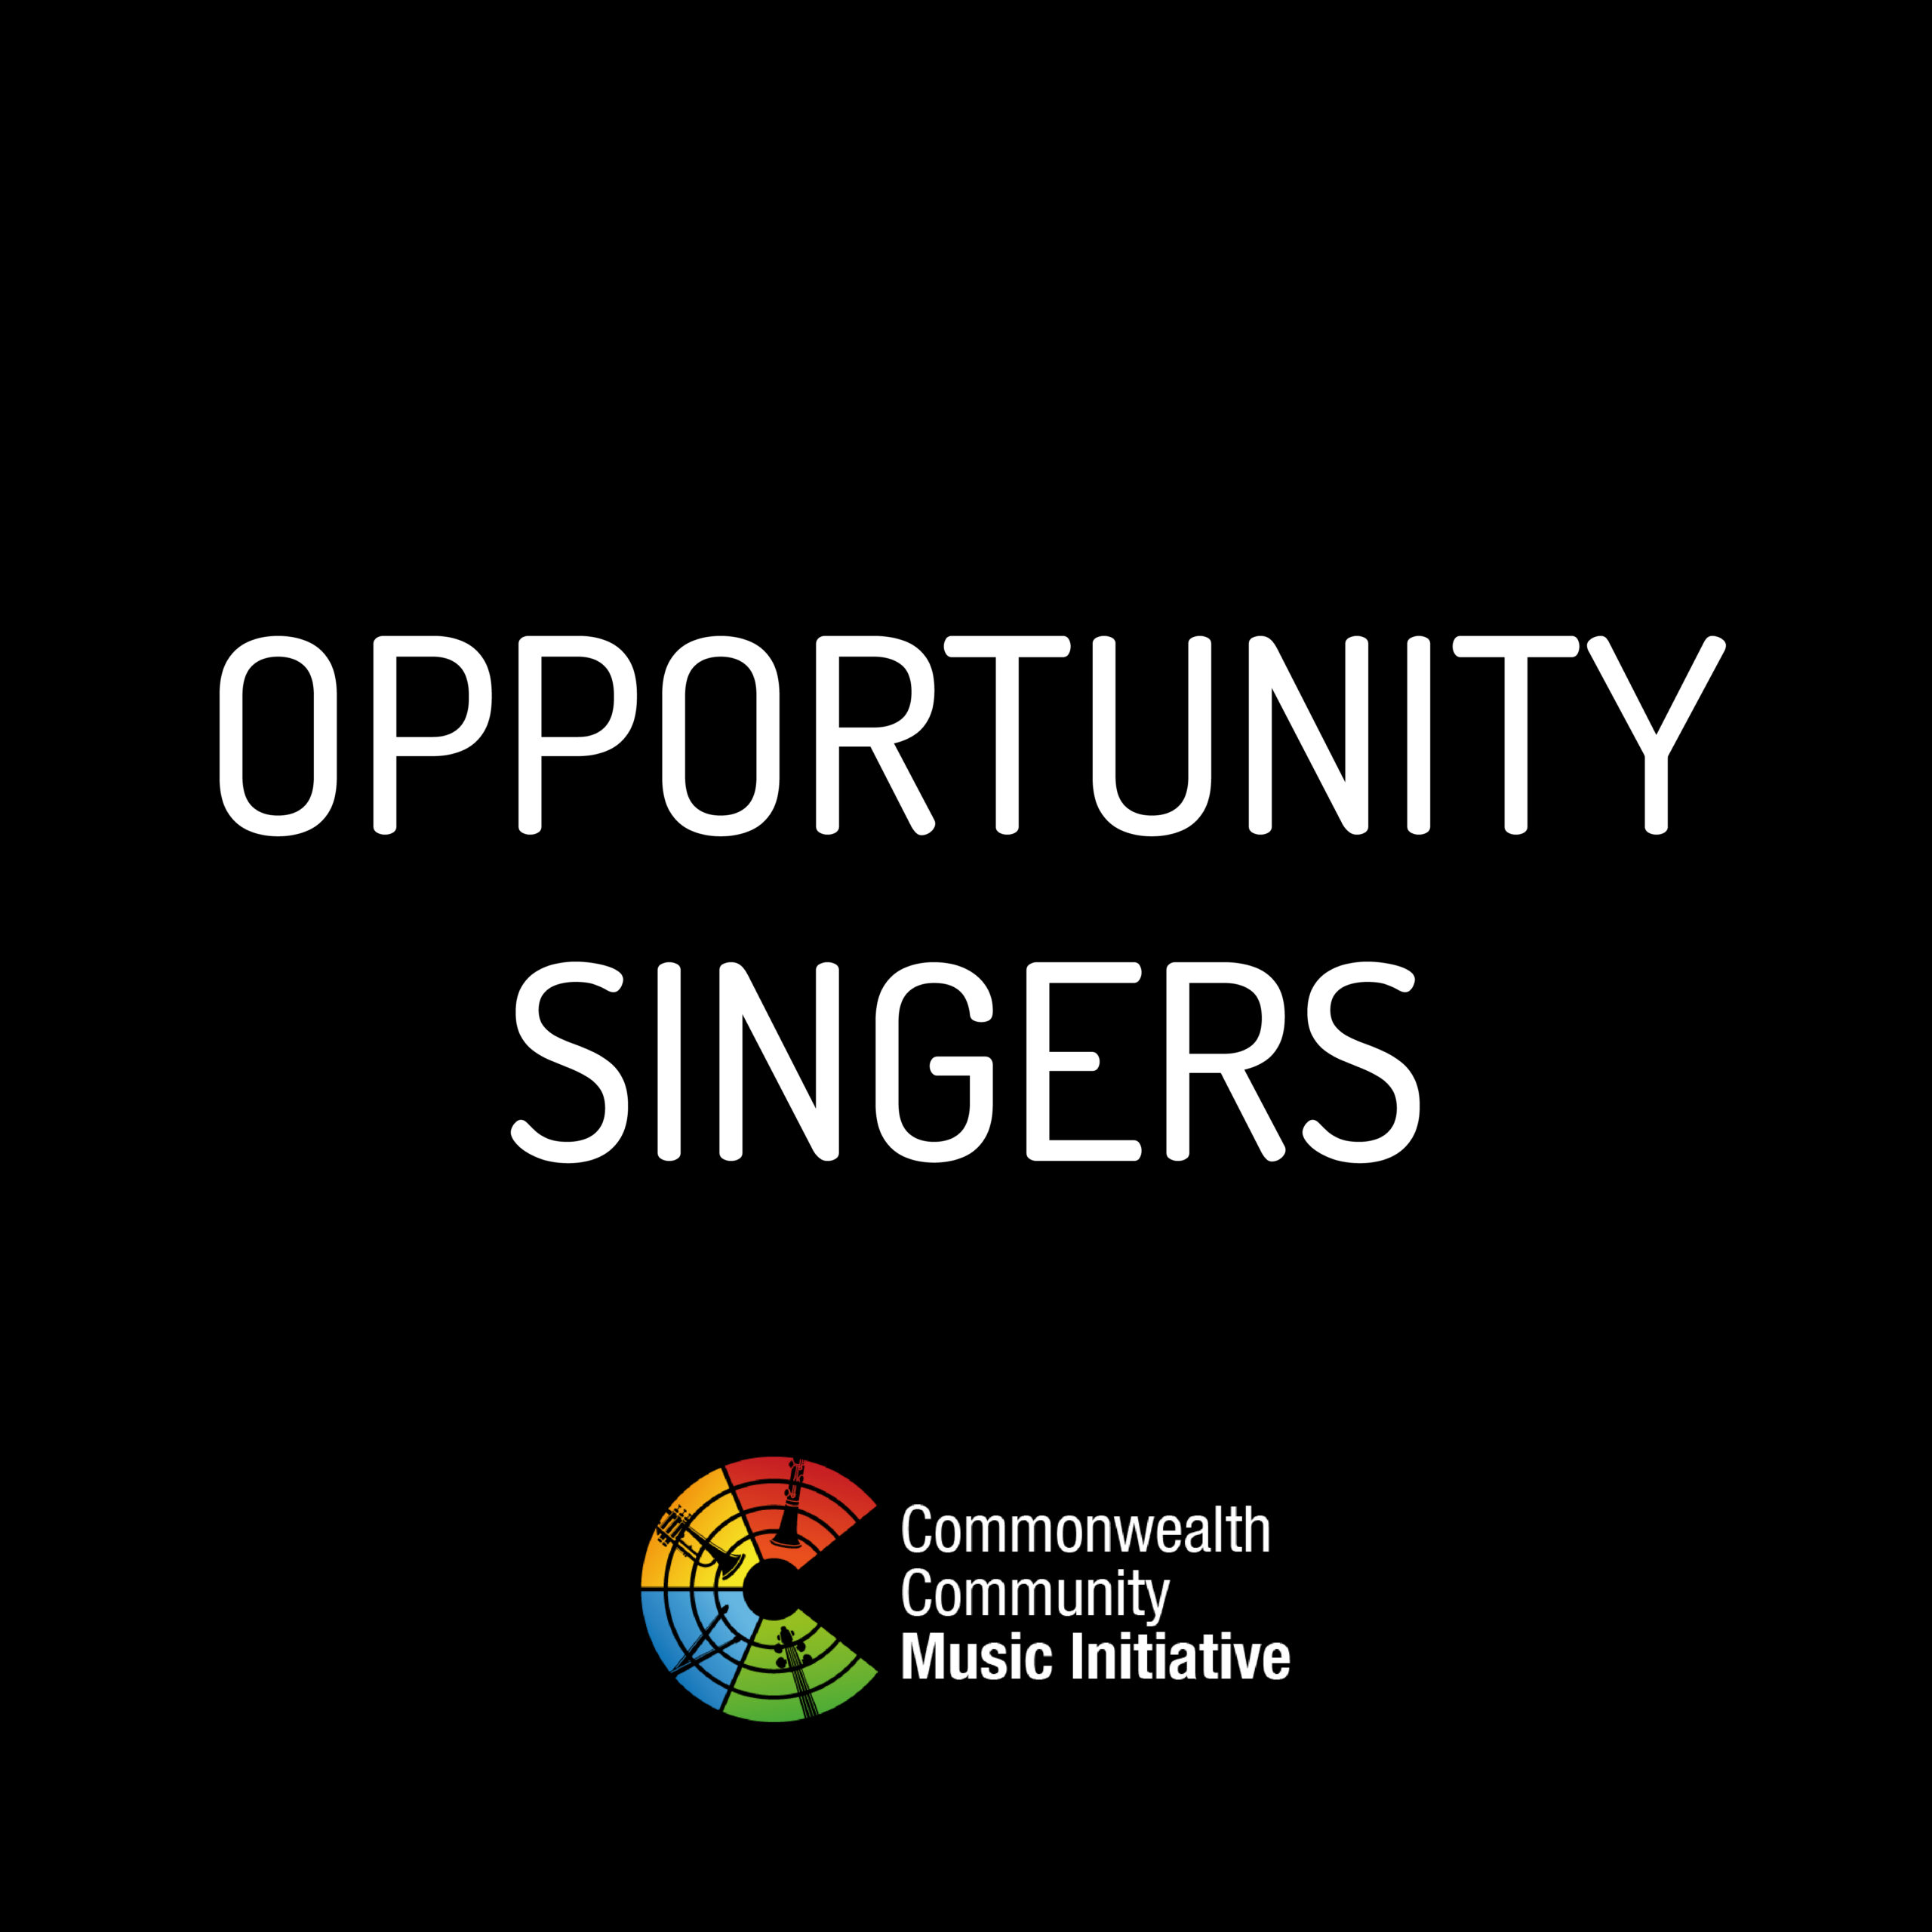 Commonwealth Community Music Initiative: Opportunity | Singers